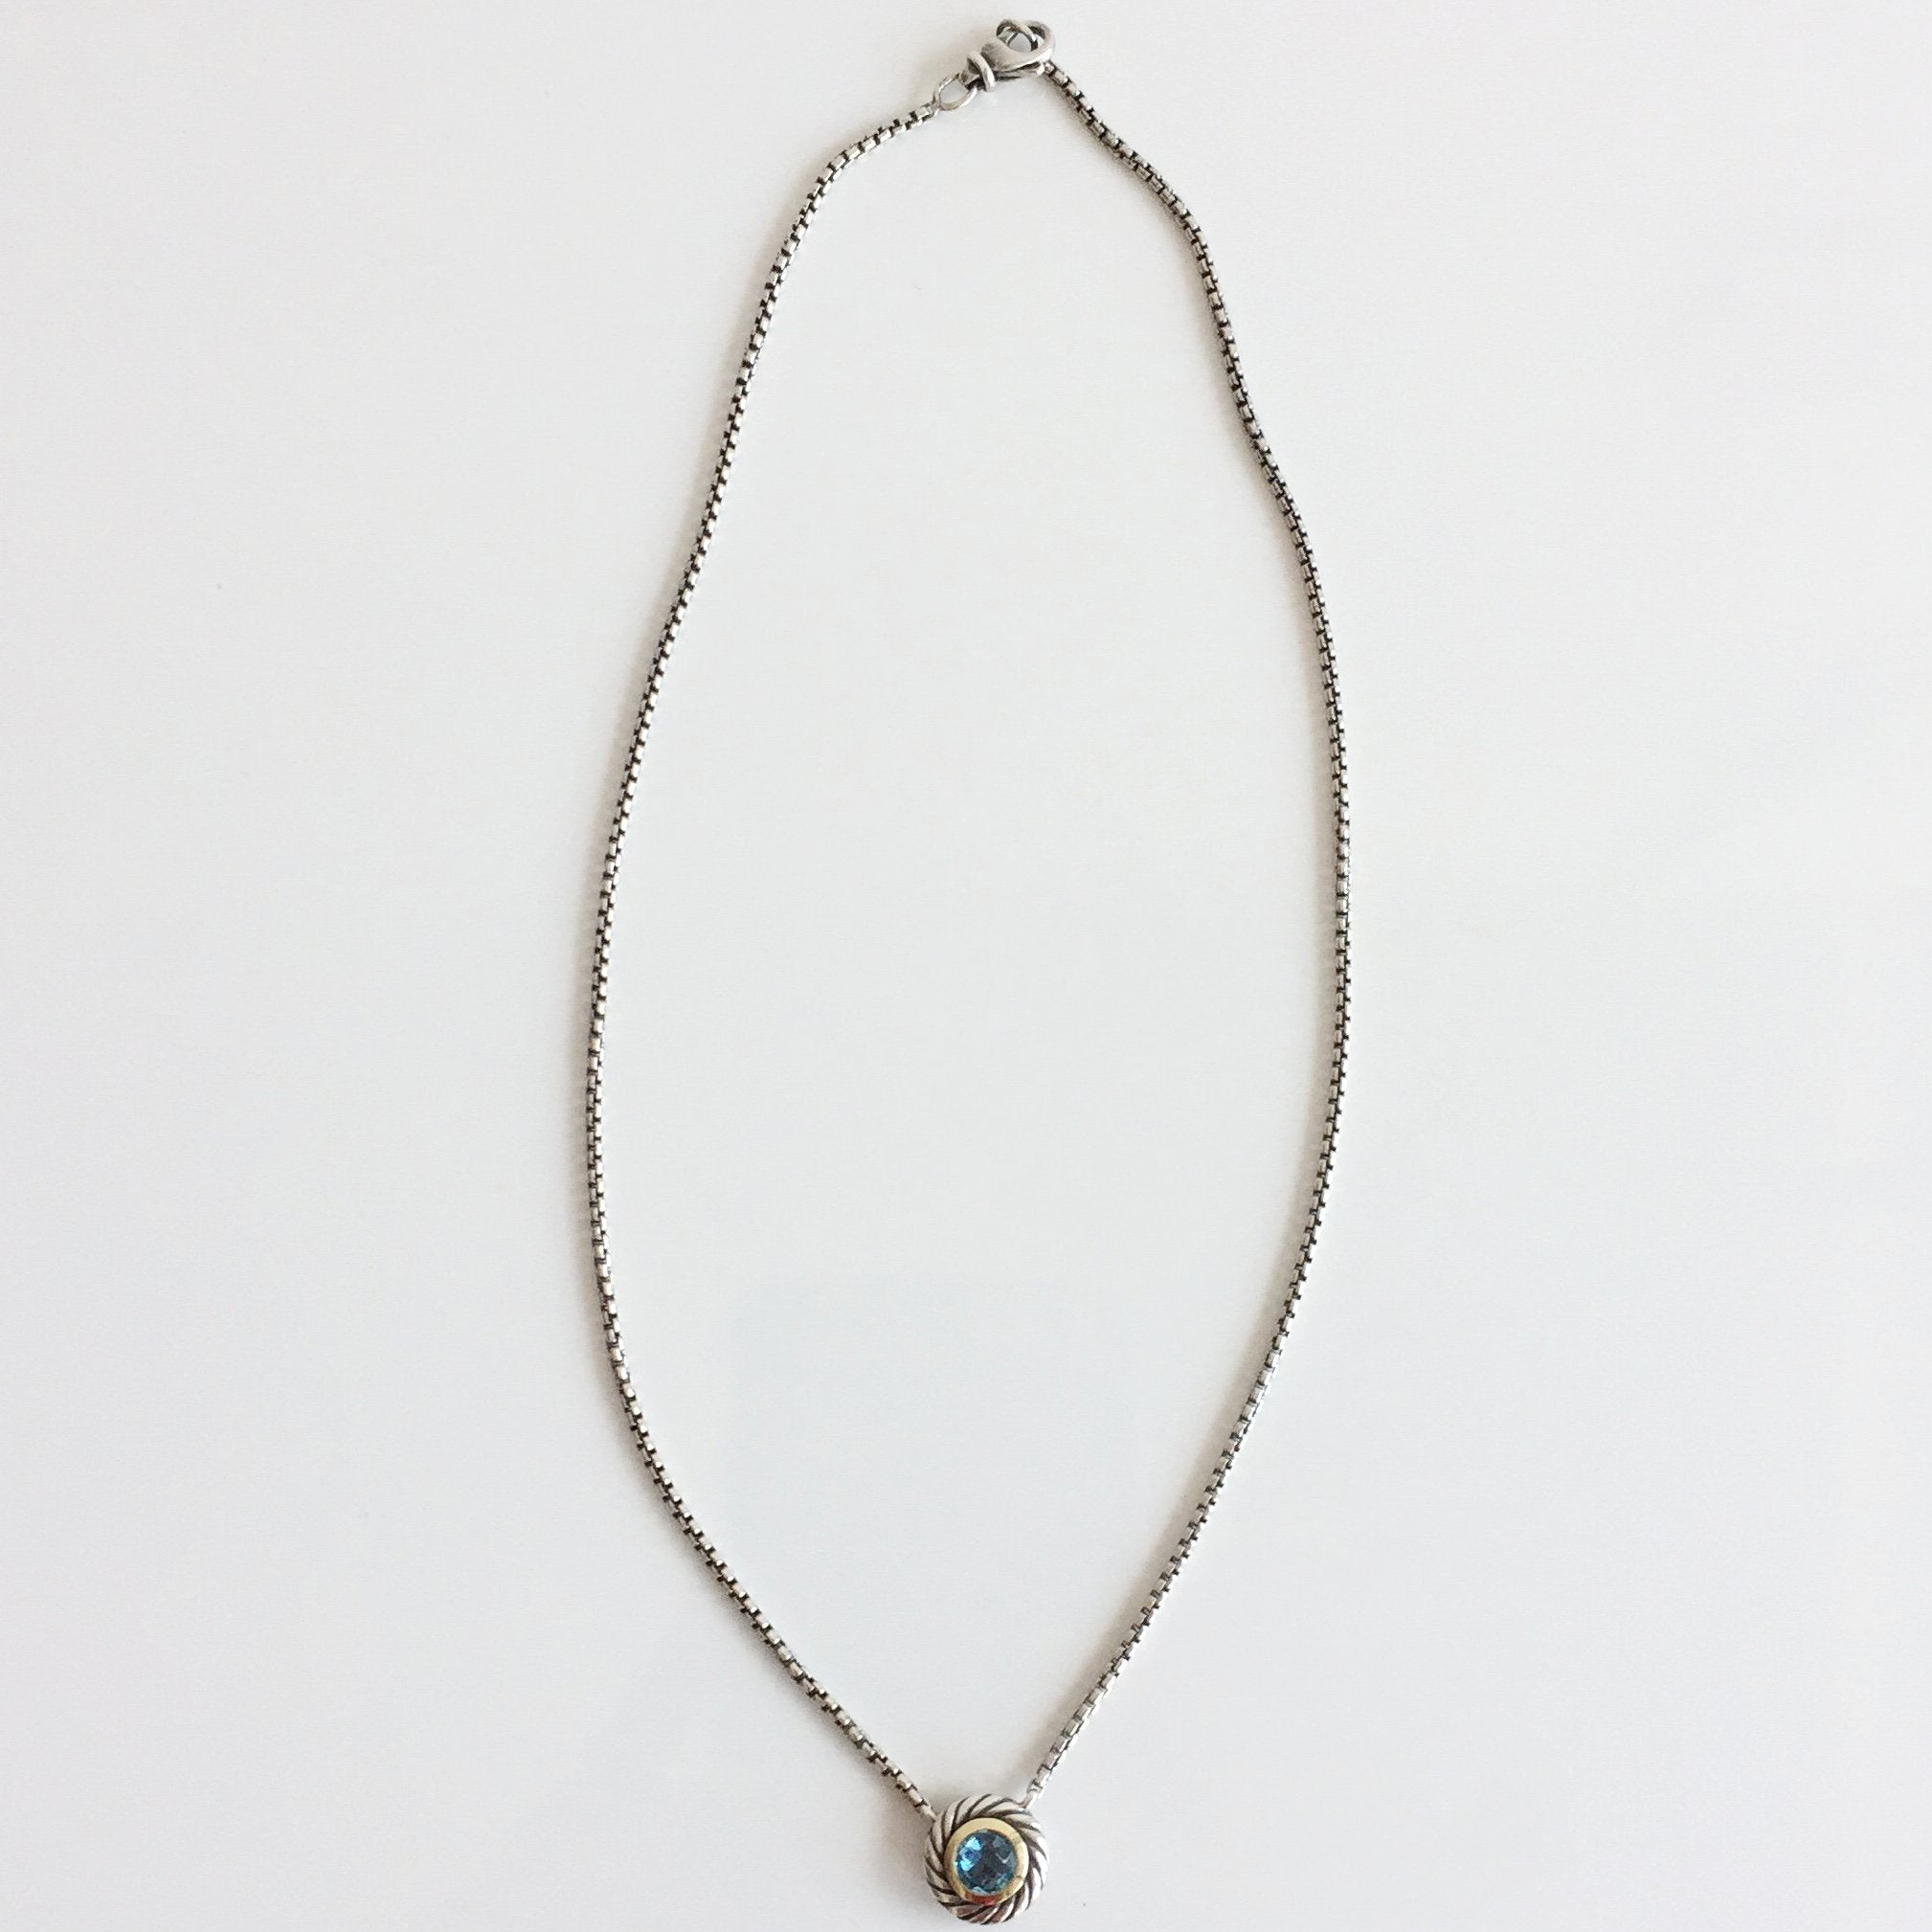 Authentic DAVID YURMAN Blue Topaz Round Albion Necklace